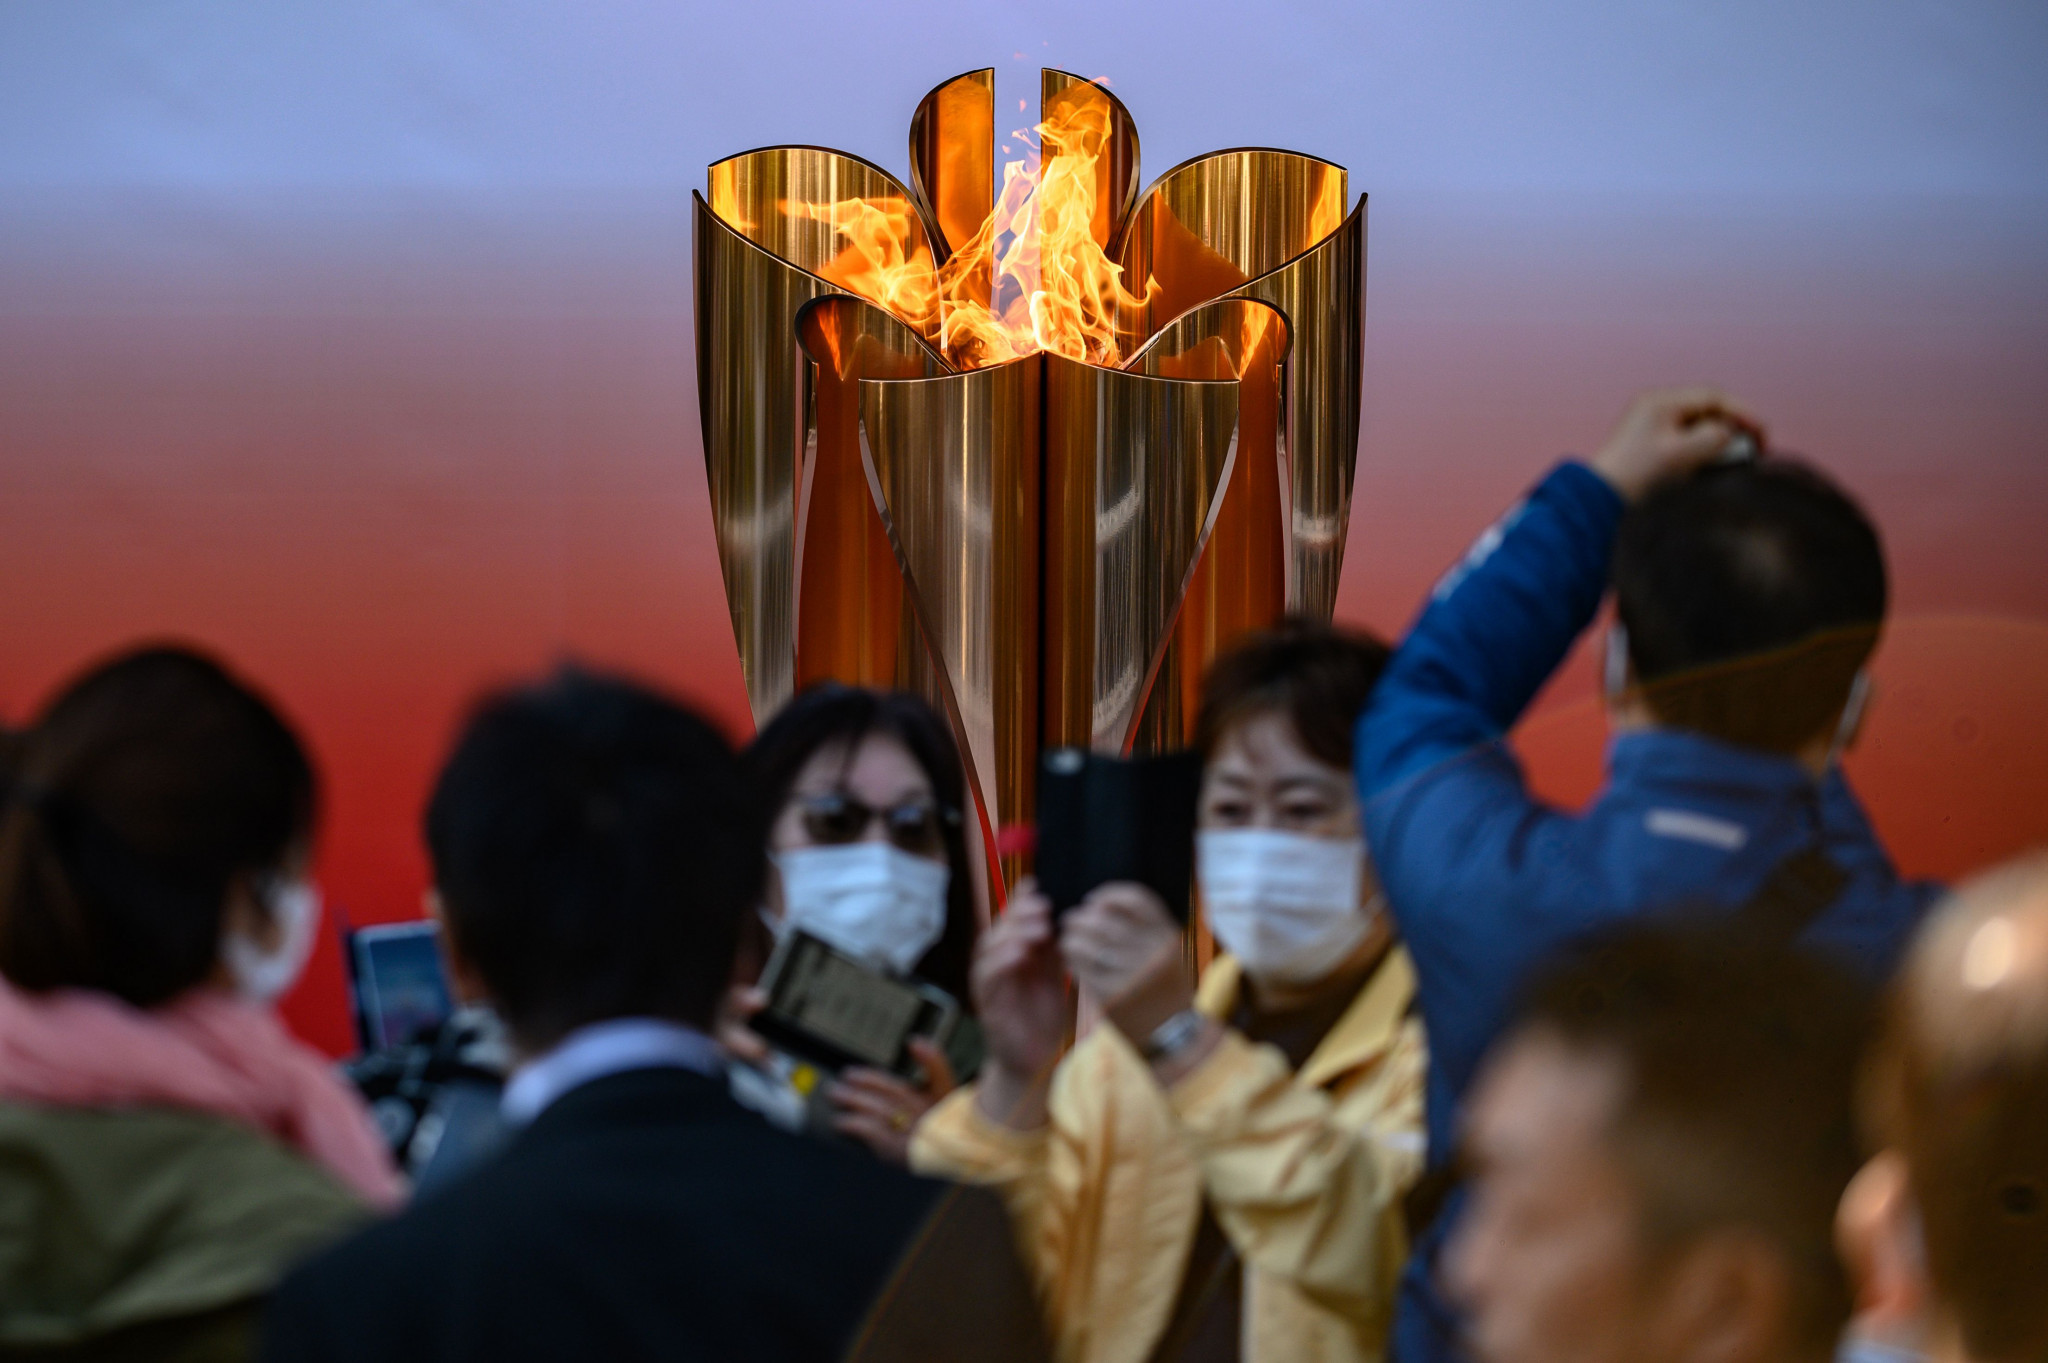 Large crowds defied fears over coronavirus to visit the Olympic flame at Sendai station in Tokyo when it was put on display in March ©Getty Images